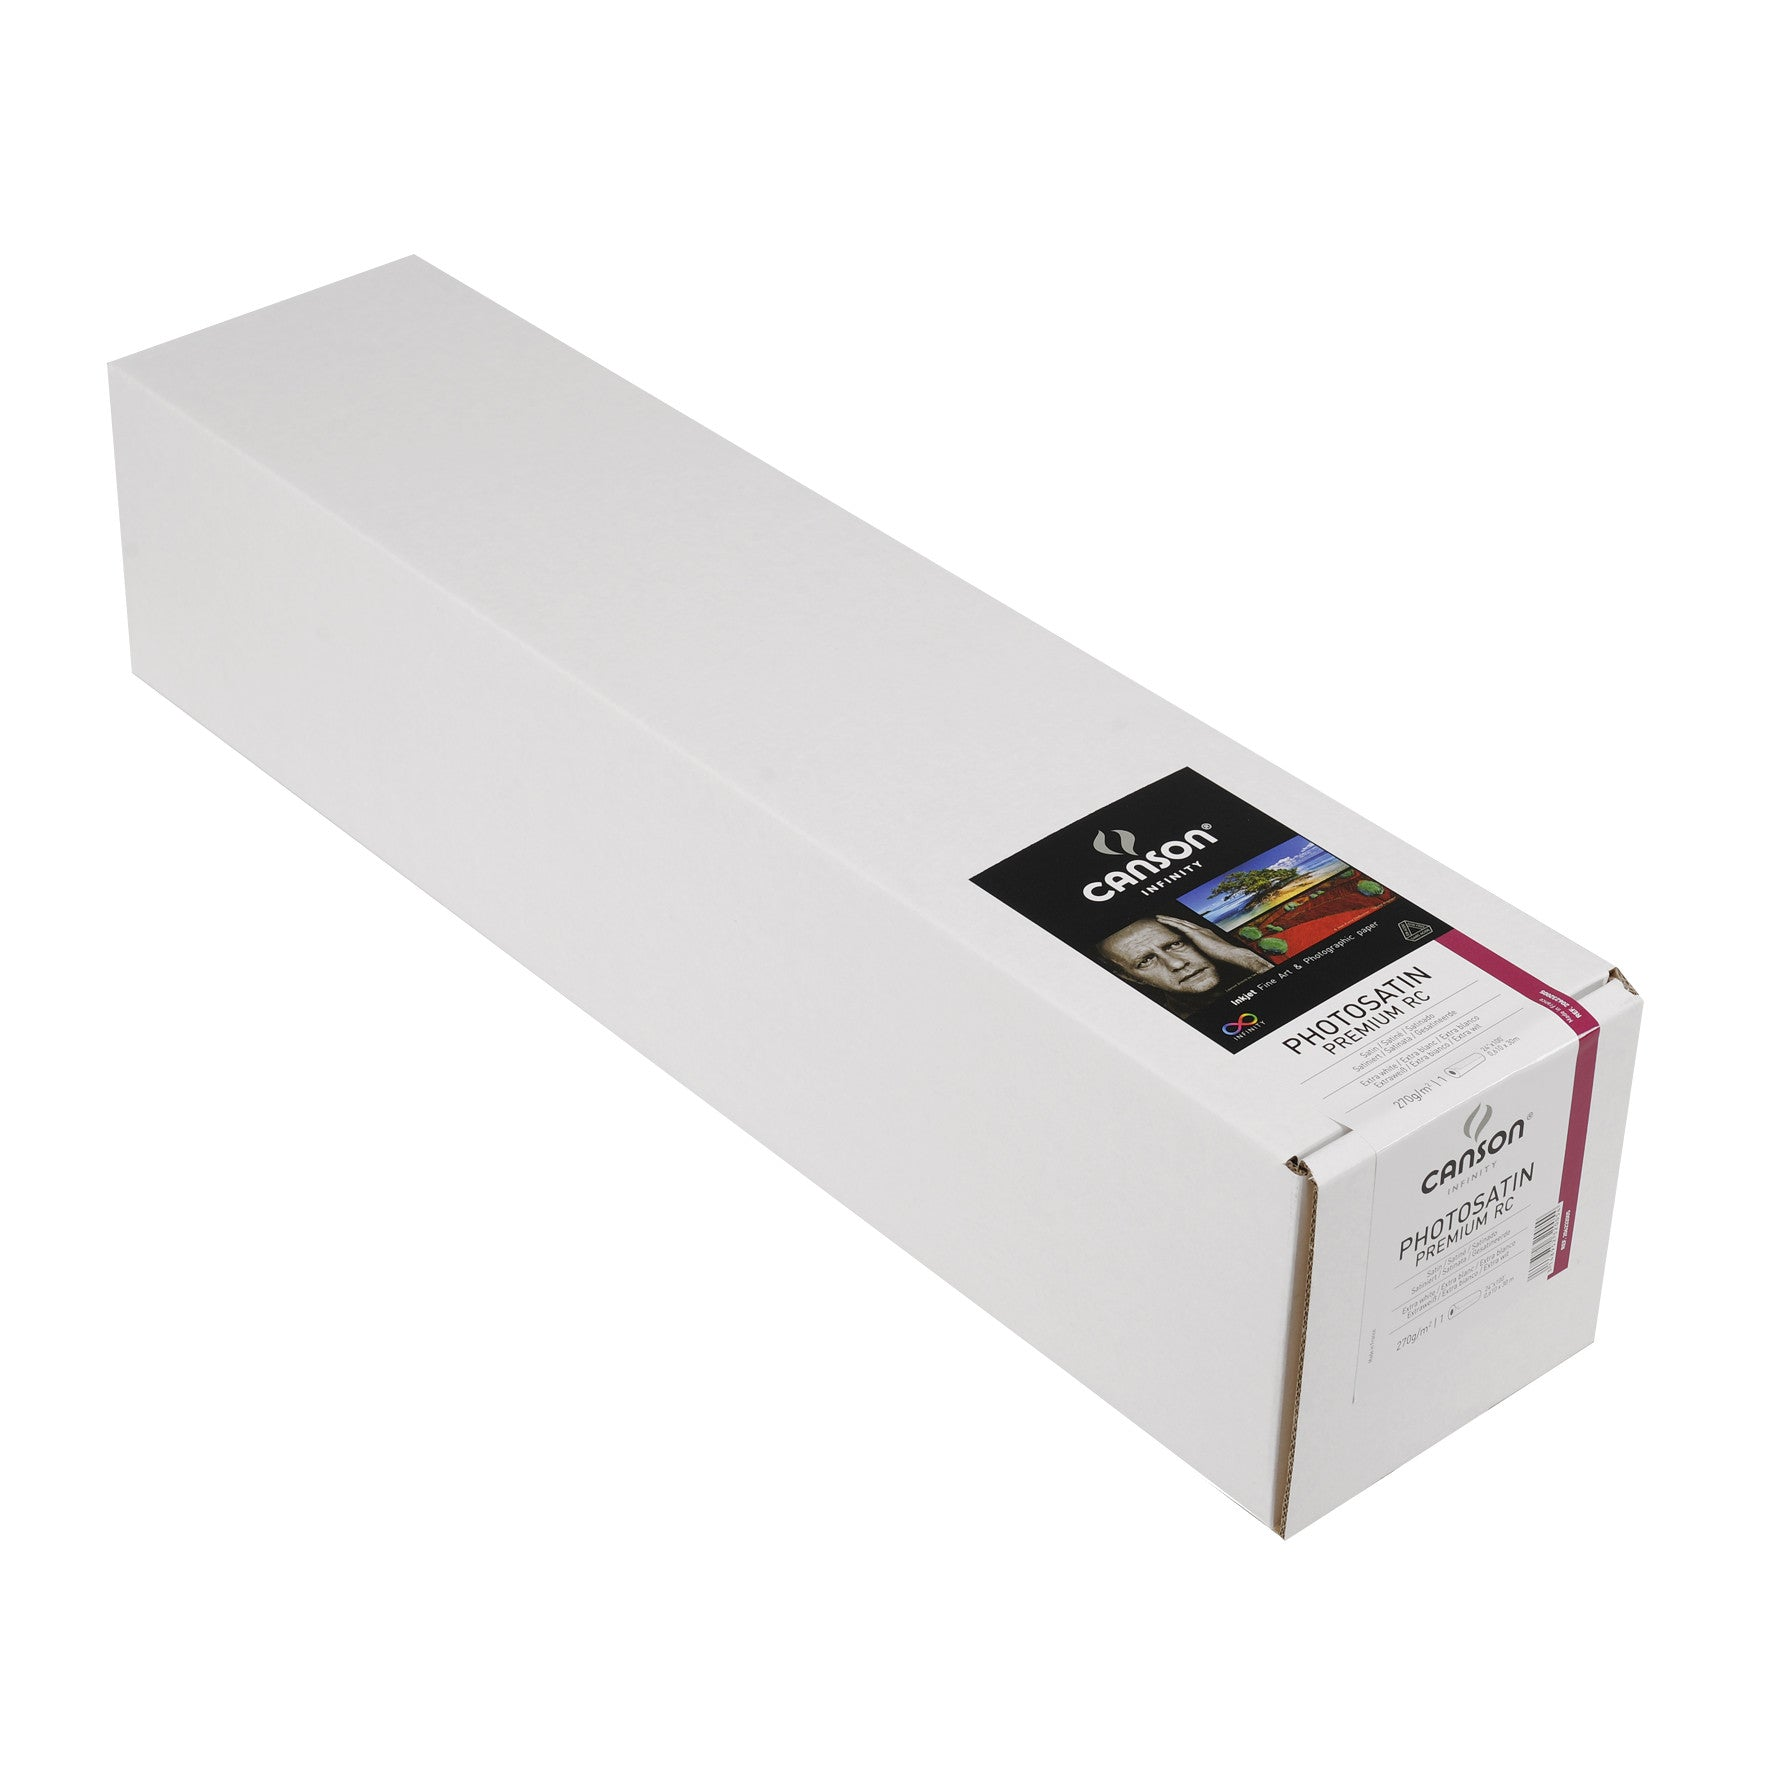 "Canson Infinity Photo Satin Premium RC - 270gsm - 24""x100' roll - Wall Your Photos"